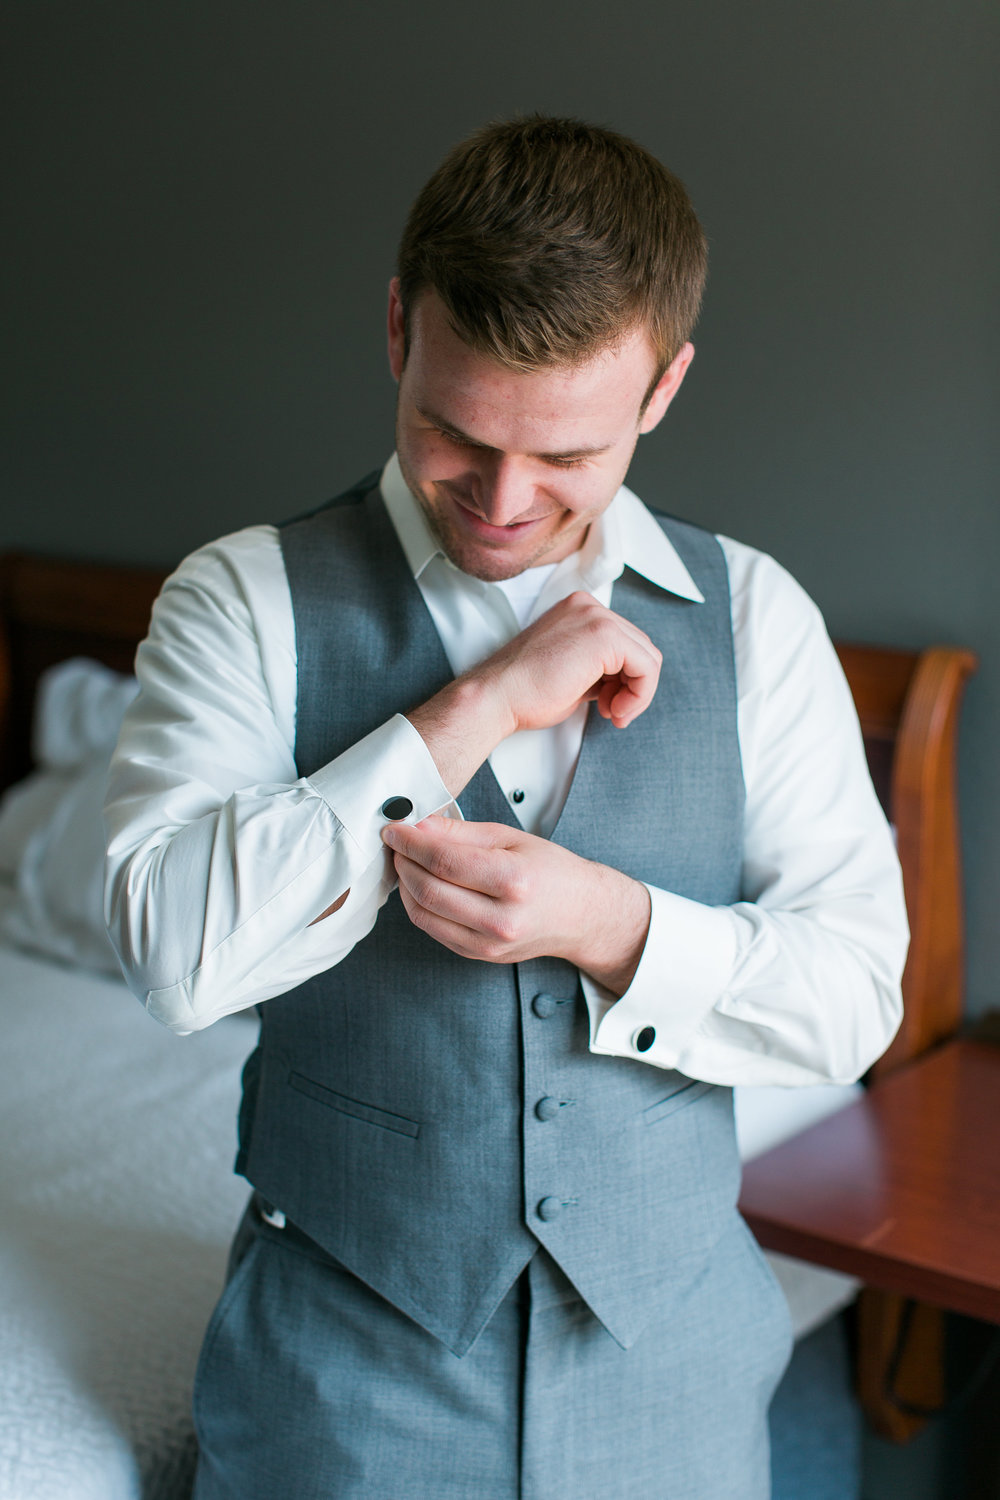 Minneapolis groom doing cufflinks getting ready for wedding Minnesota wedding photography Mallory Kiesow Photography